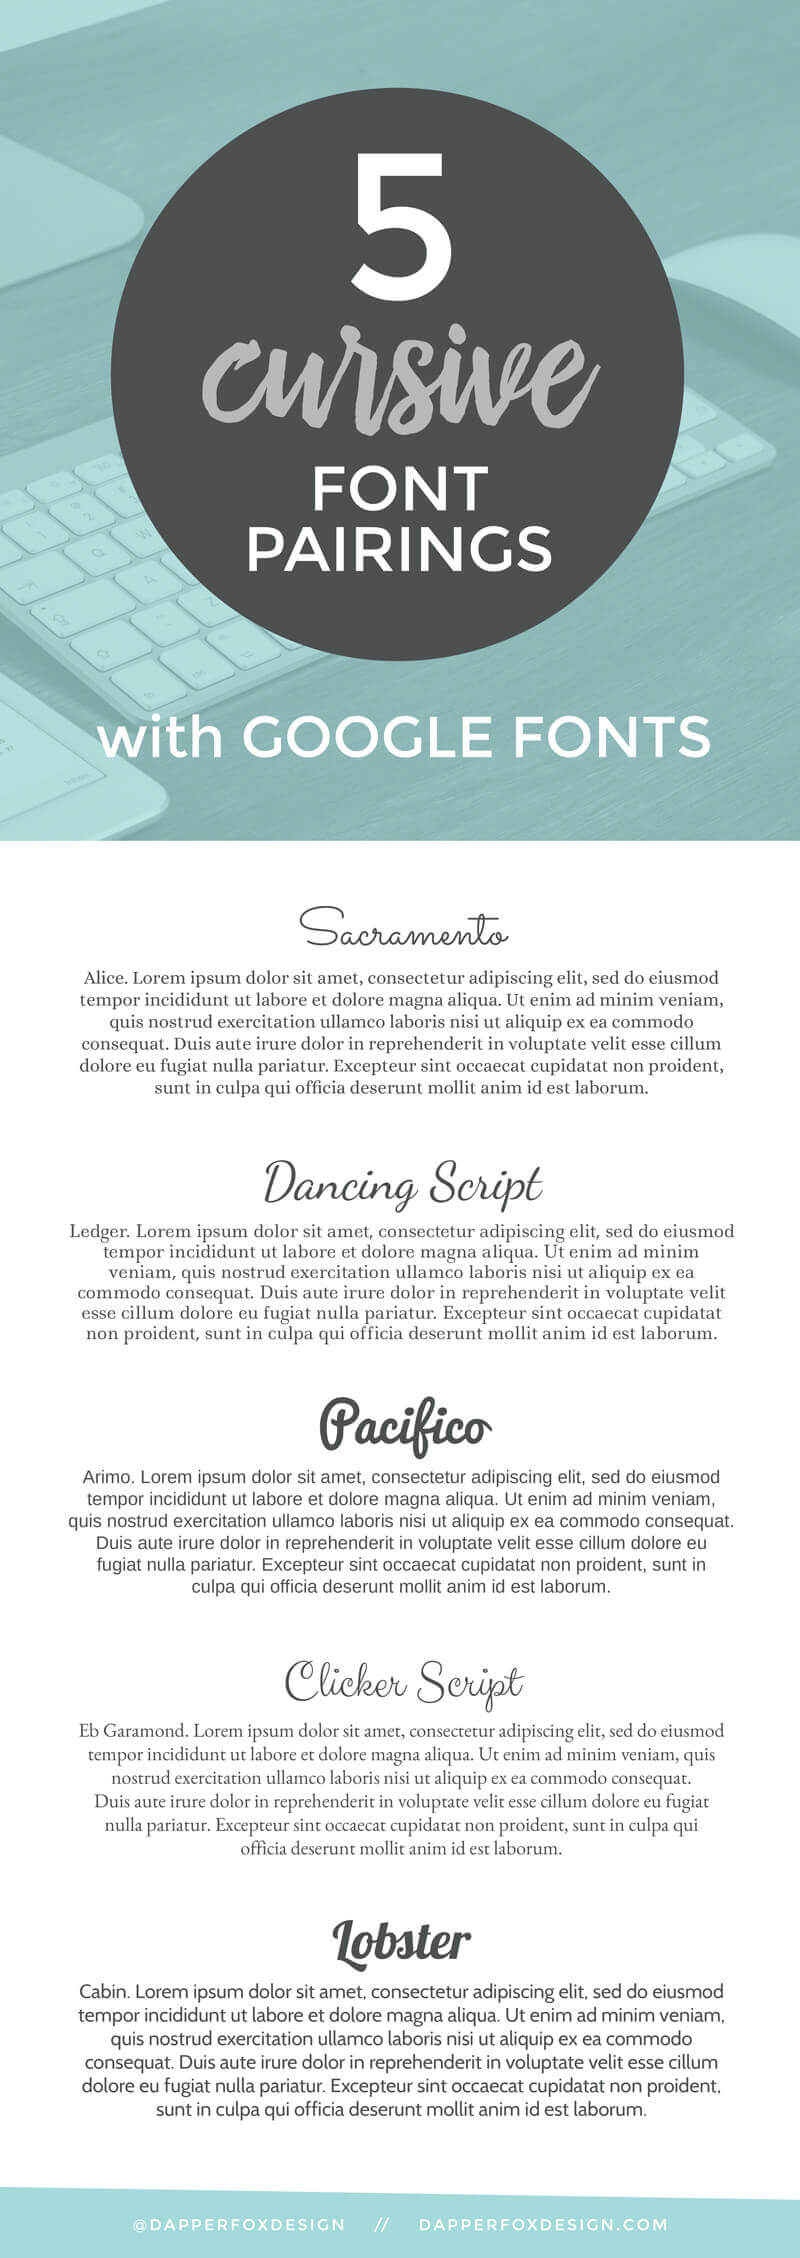 google font pairings how to pair fonts by Dapper Fox Design in Salt Lake City Utah// Website Design - Branding - Logo Design - Entrepreneur Blog and Resource